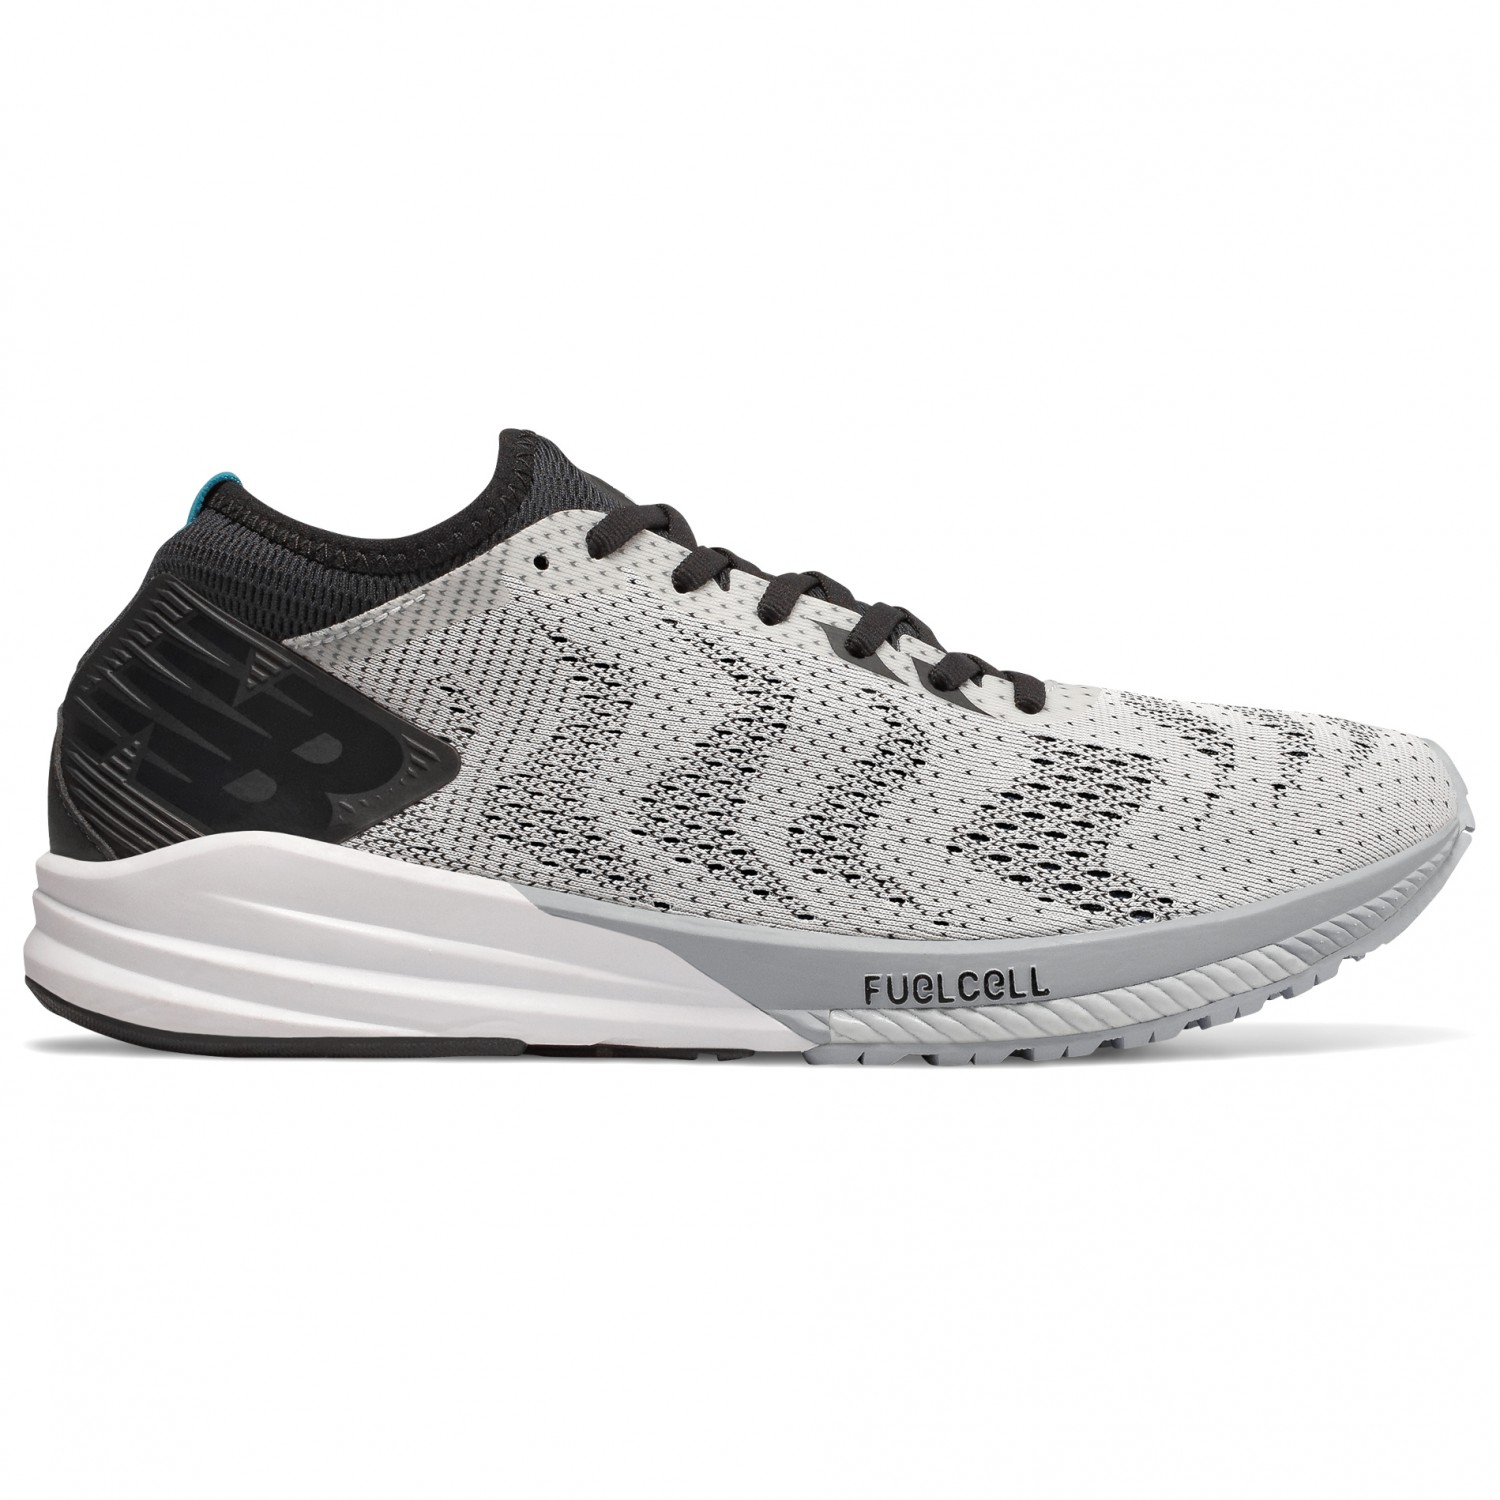 New Balance Fuelcell Impulse Chaussures de running White Black | 8,5 (US)